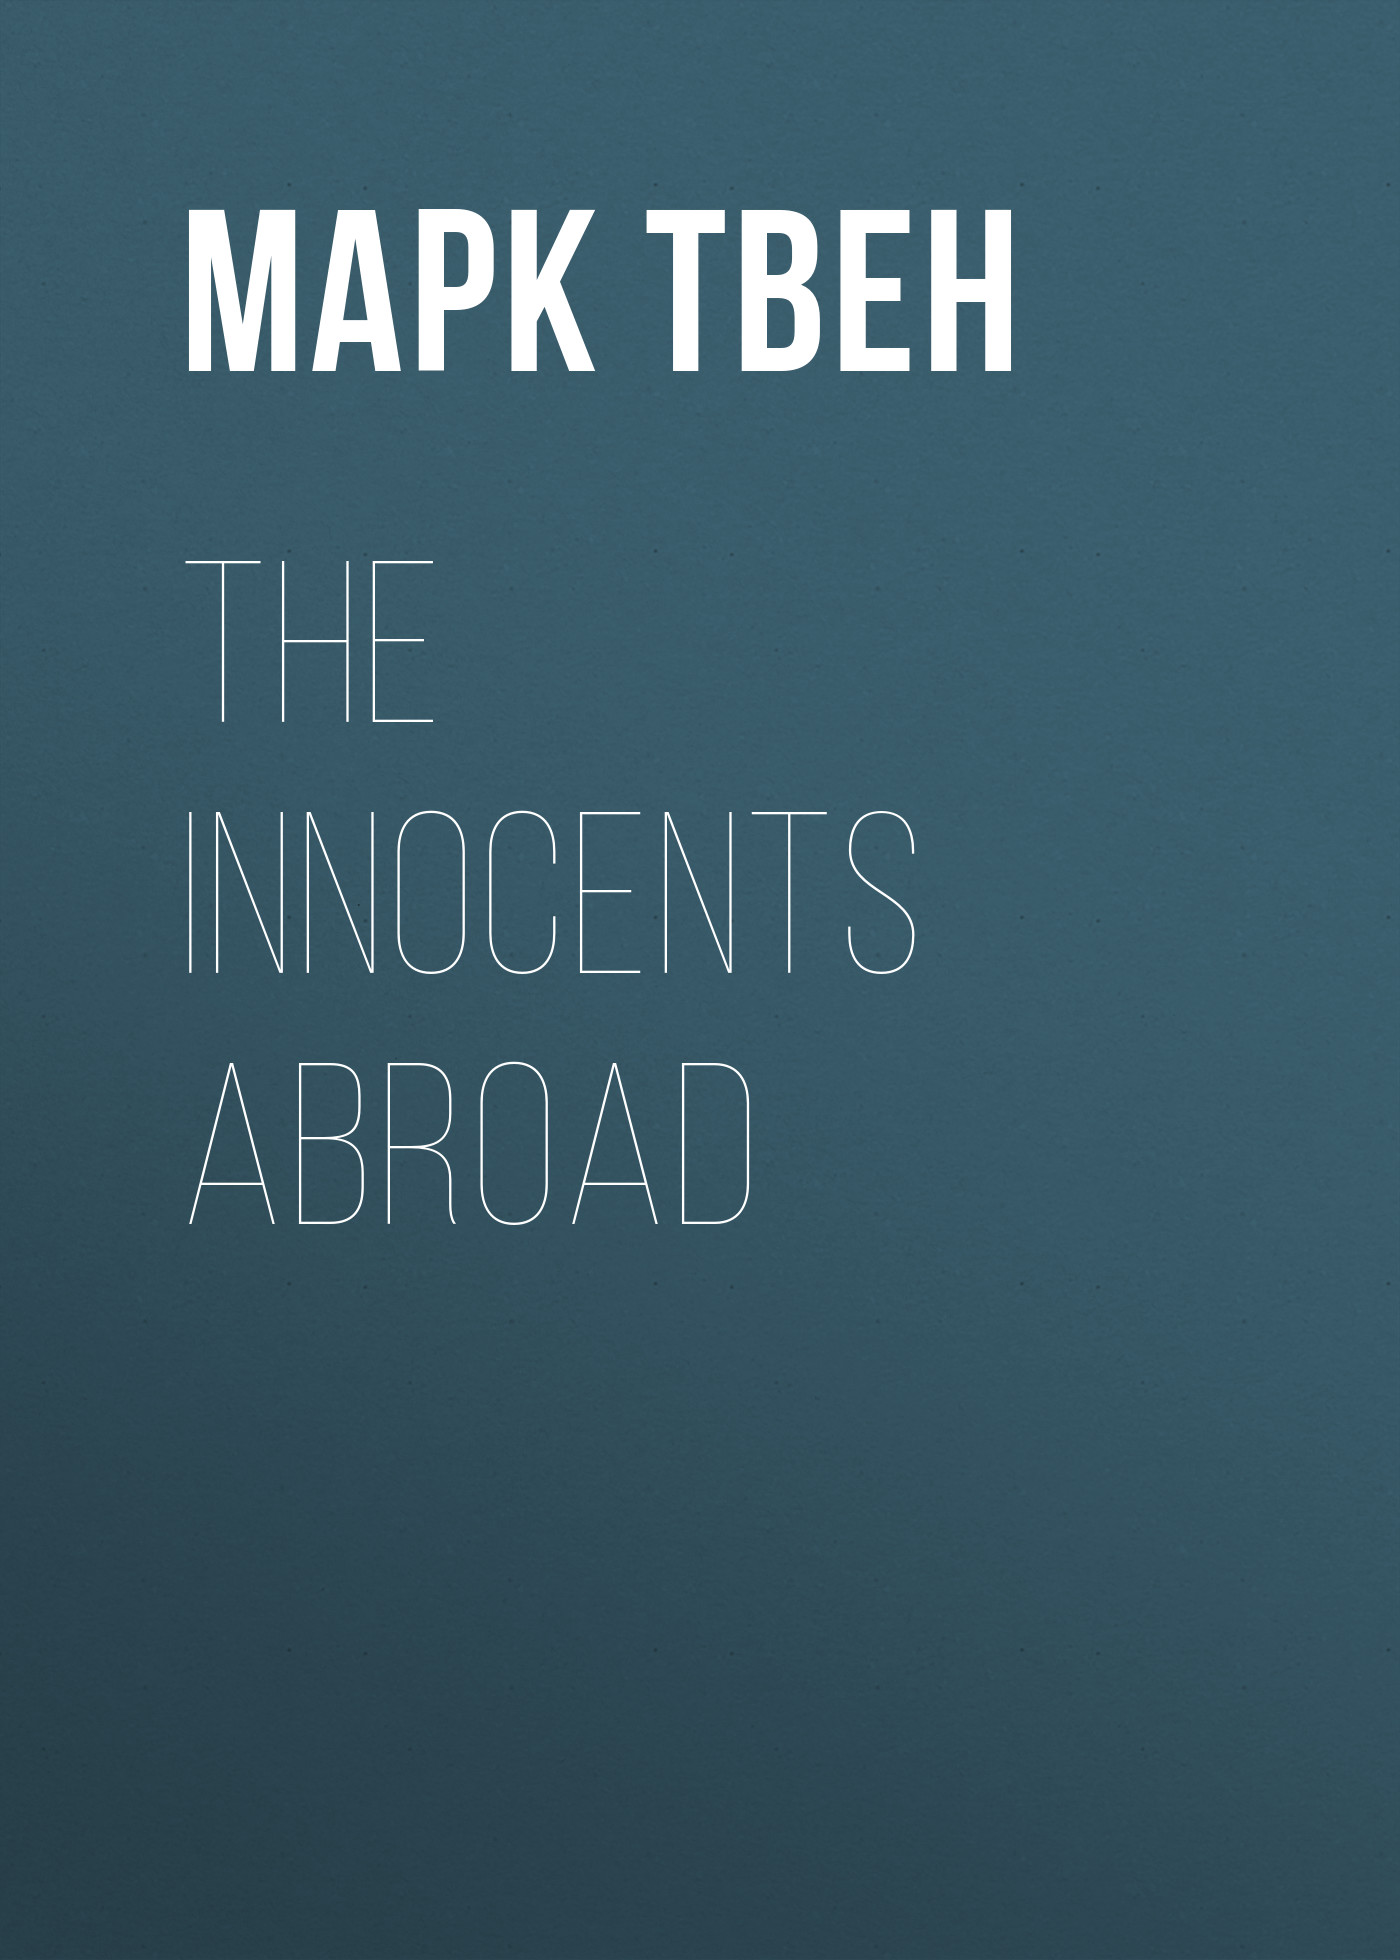 Марк Твен The Innocents Abroad mark twain the innocents abroad